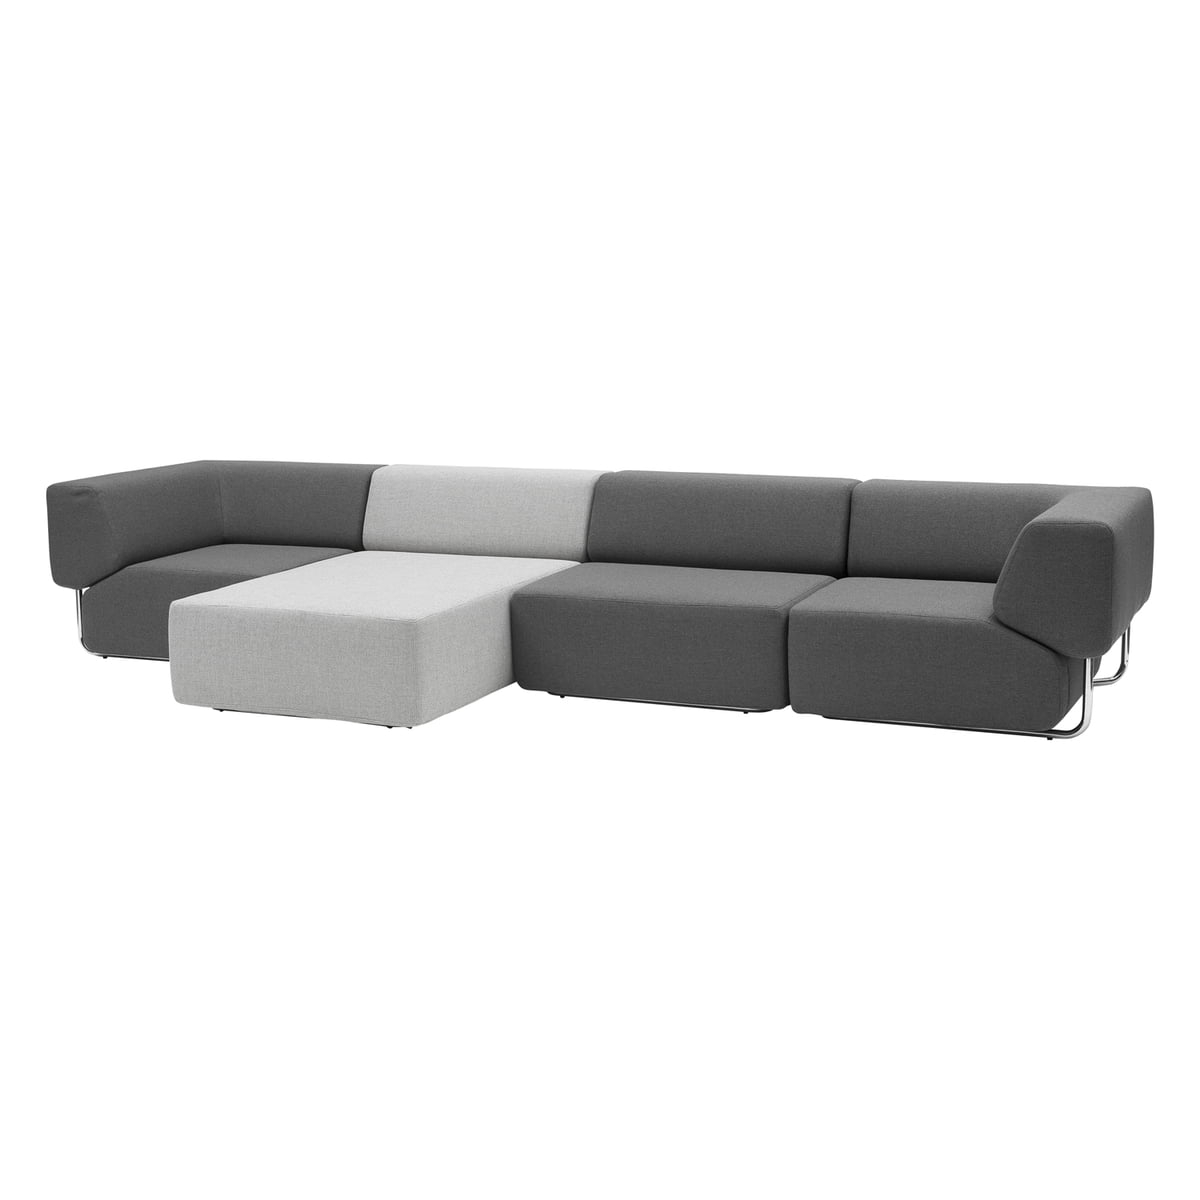 Softline   Noa, Three Elements, Dark Grey, Chaise Longue Light G